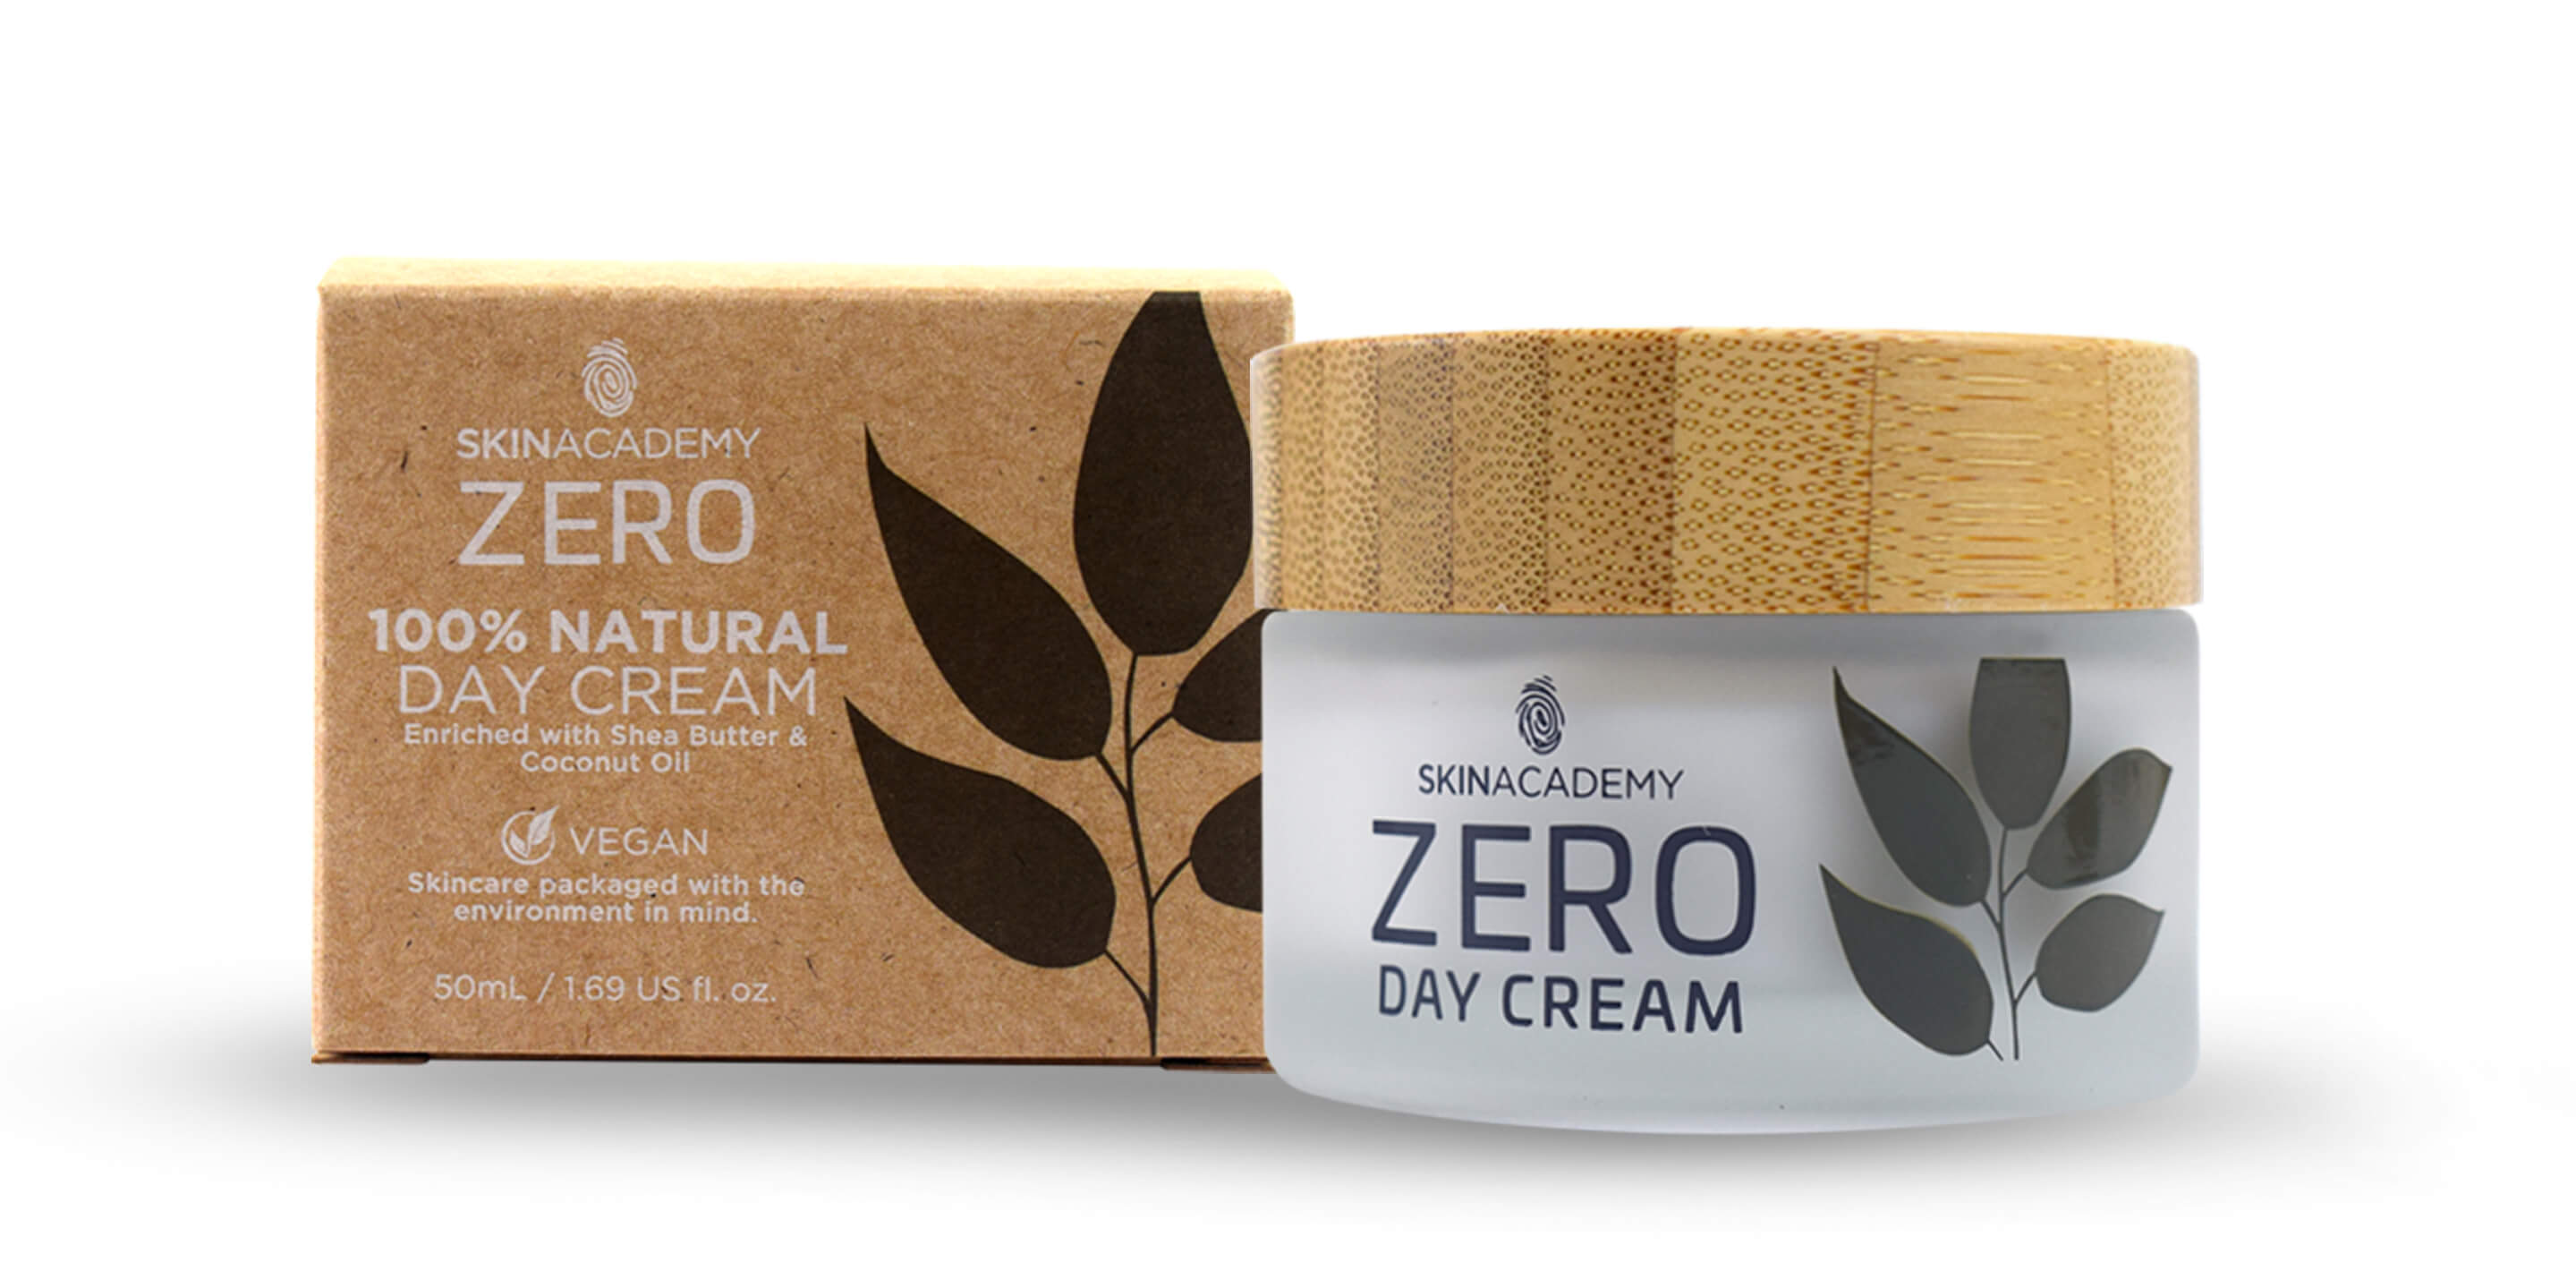 Used in product image to show what the day cream looks like